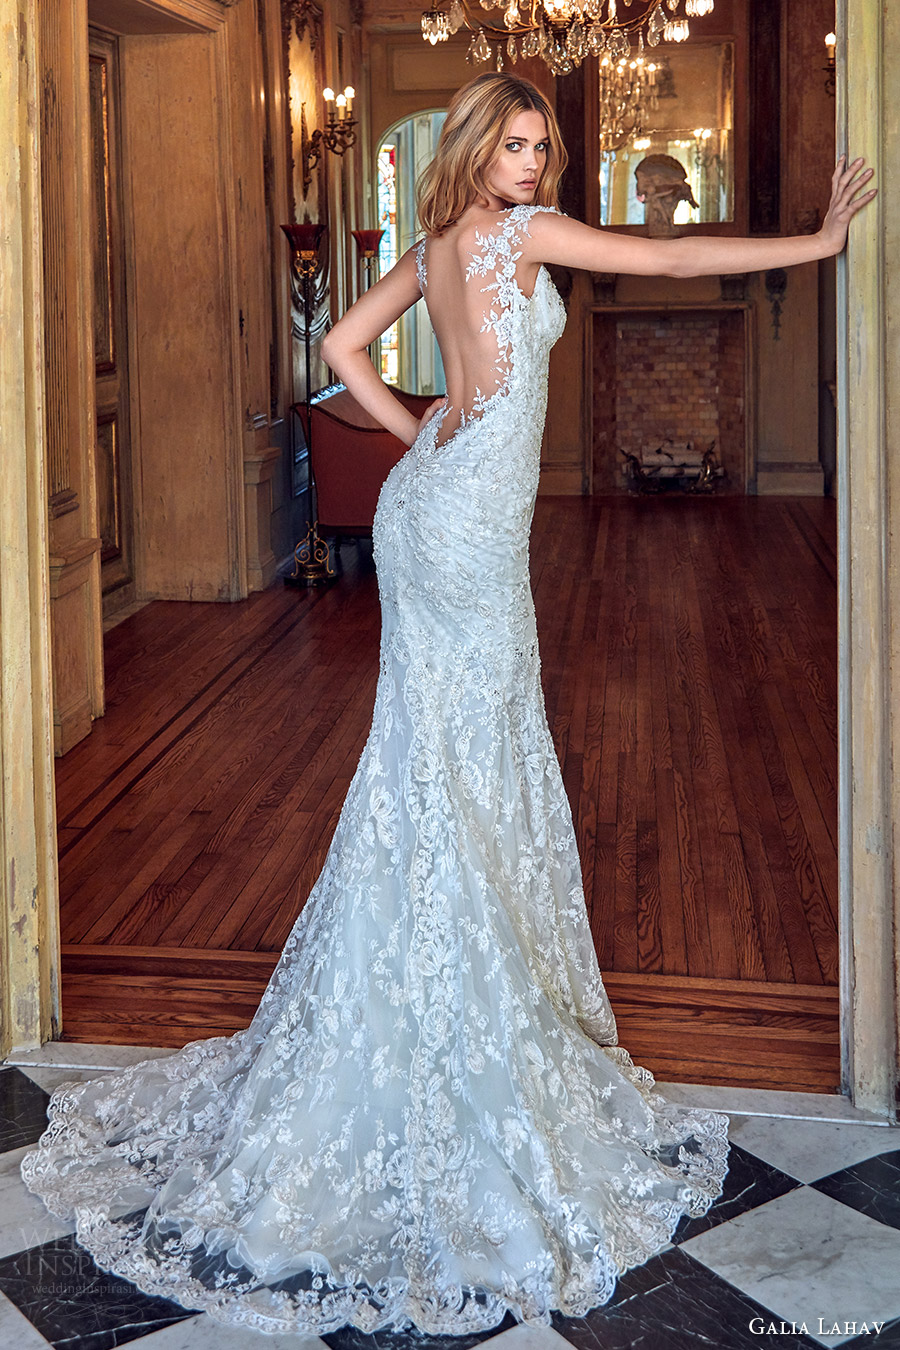 galia lahav bridal spring 2017 cap sleeves sweetheart mermaid lace wedding dress (desiree) bv low back train